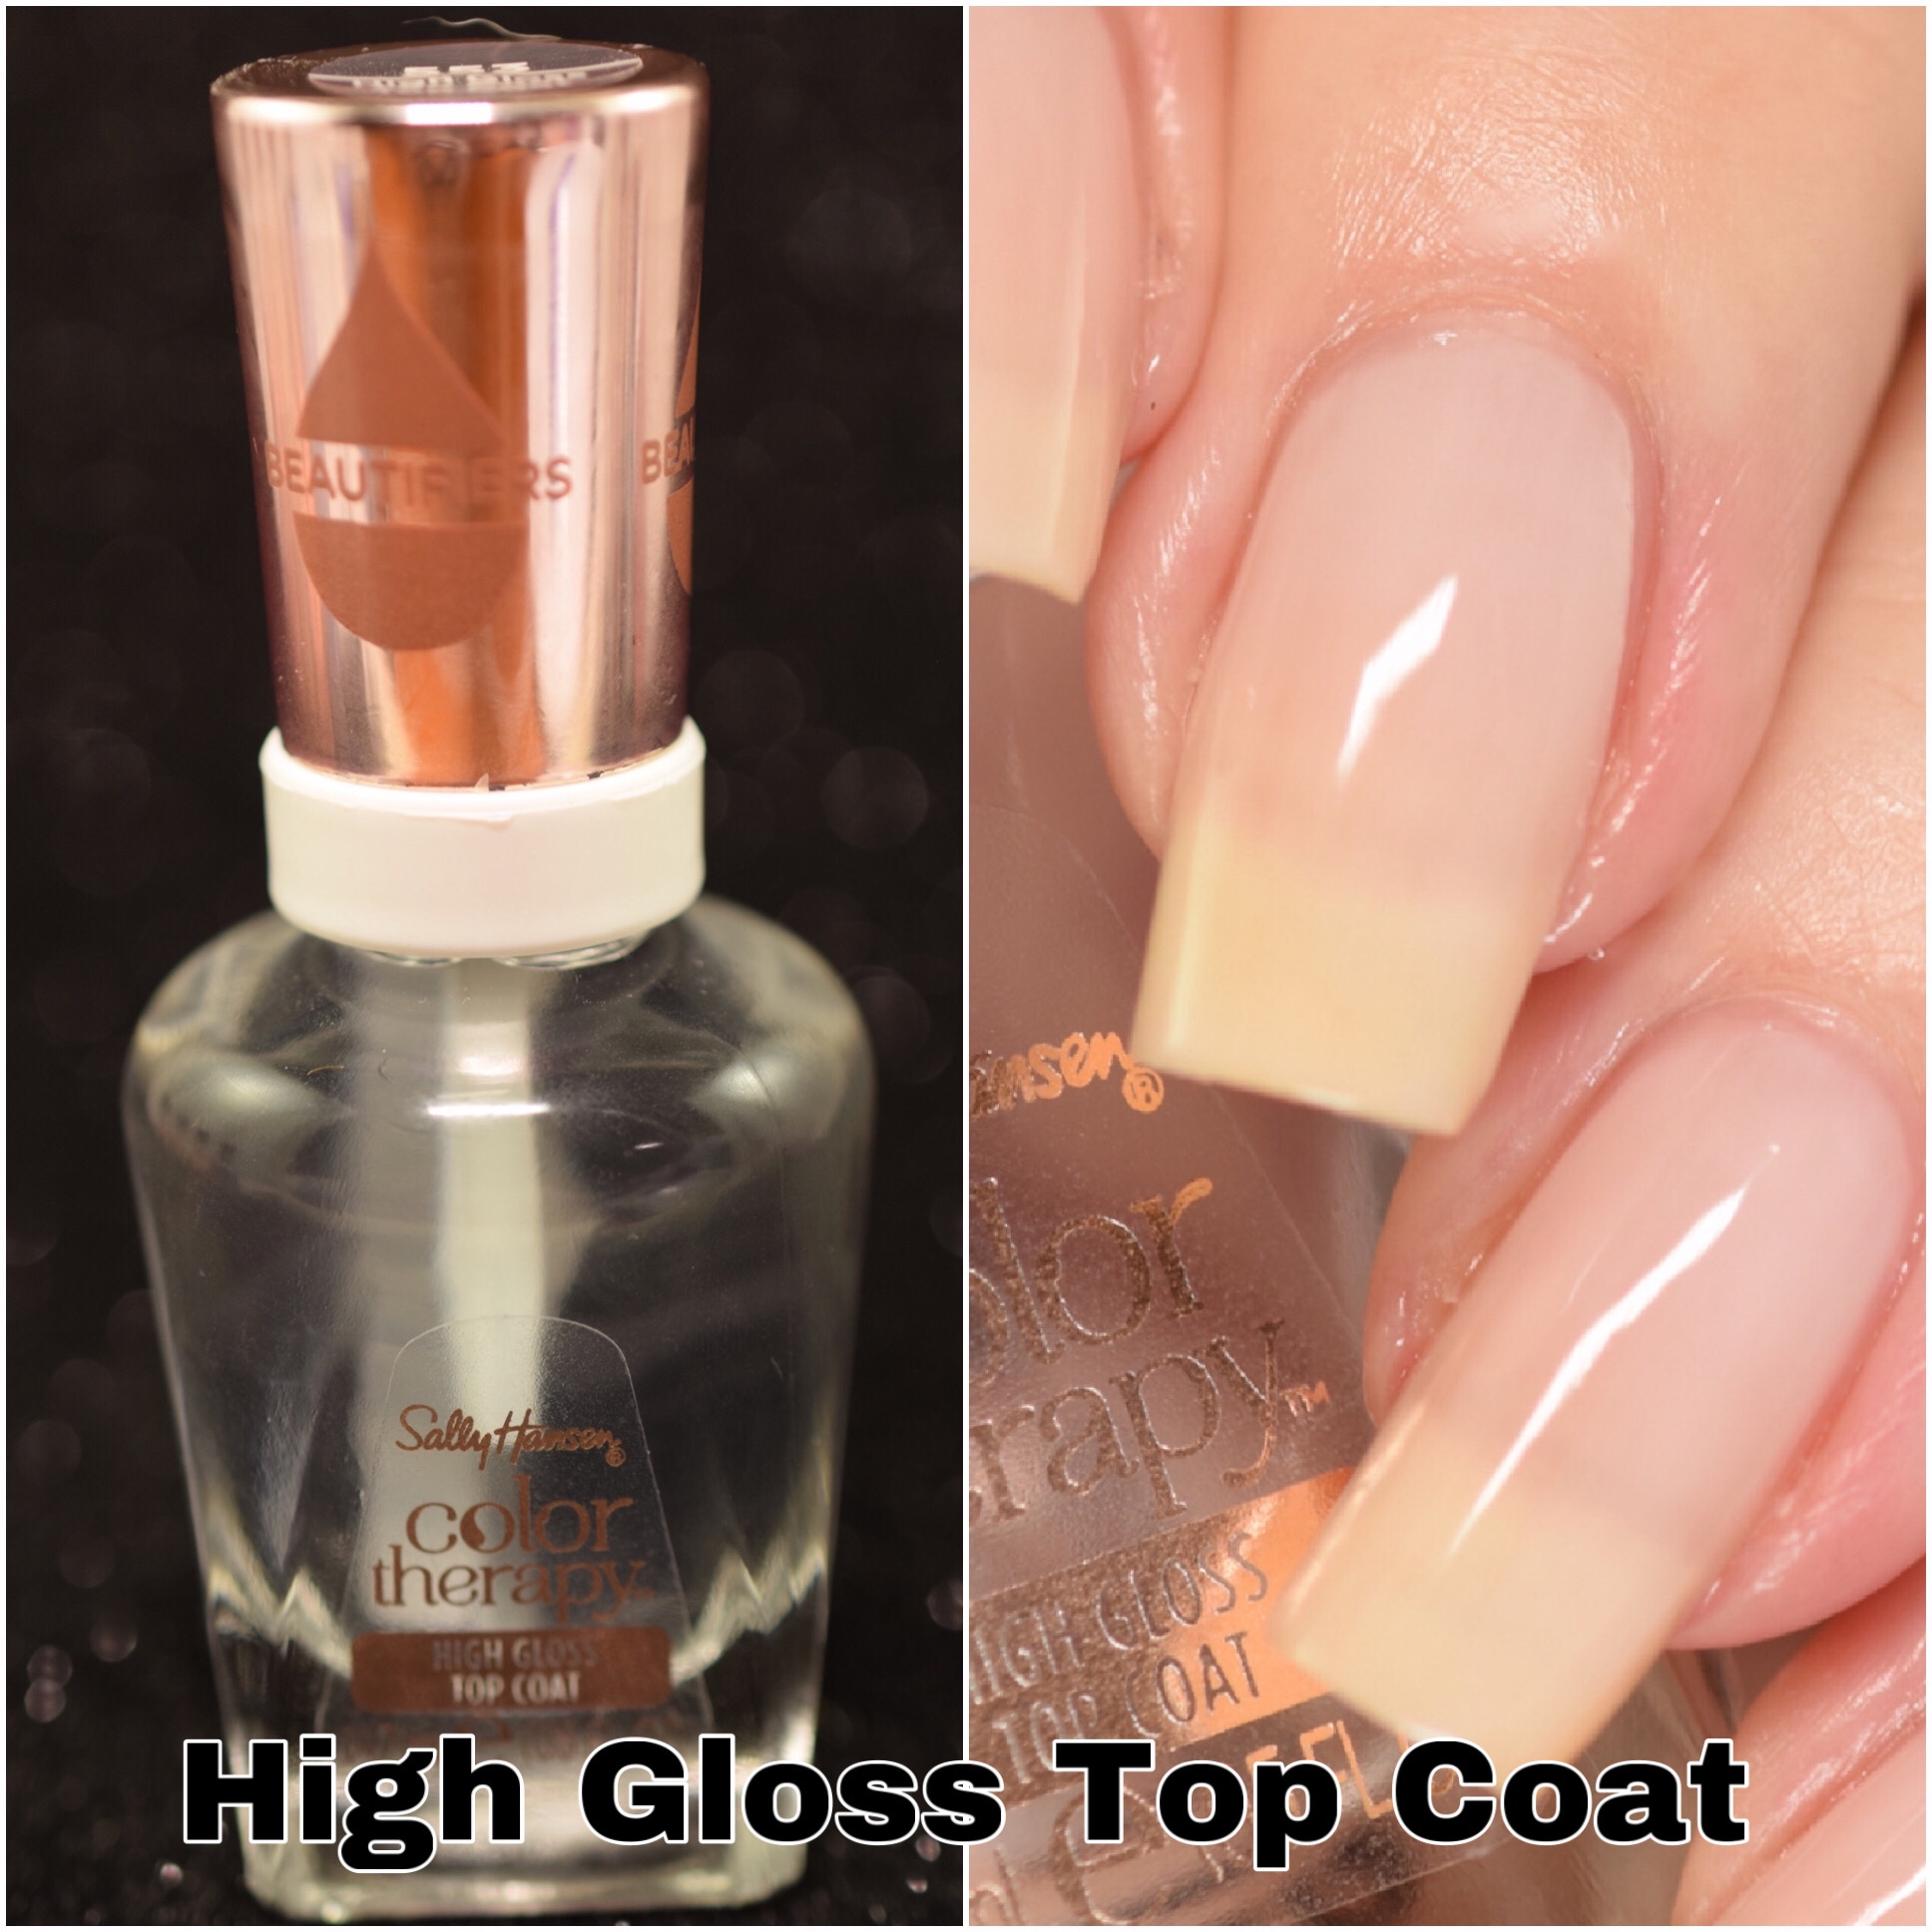 Sally Hansen Color Therapy High Gloss Top Coat